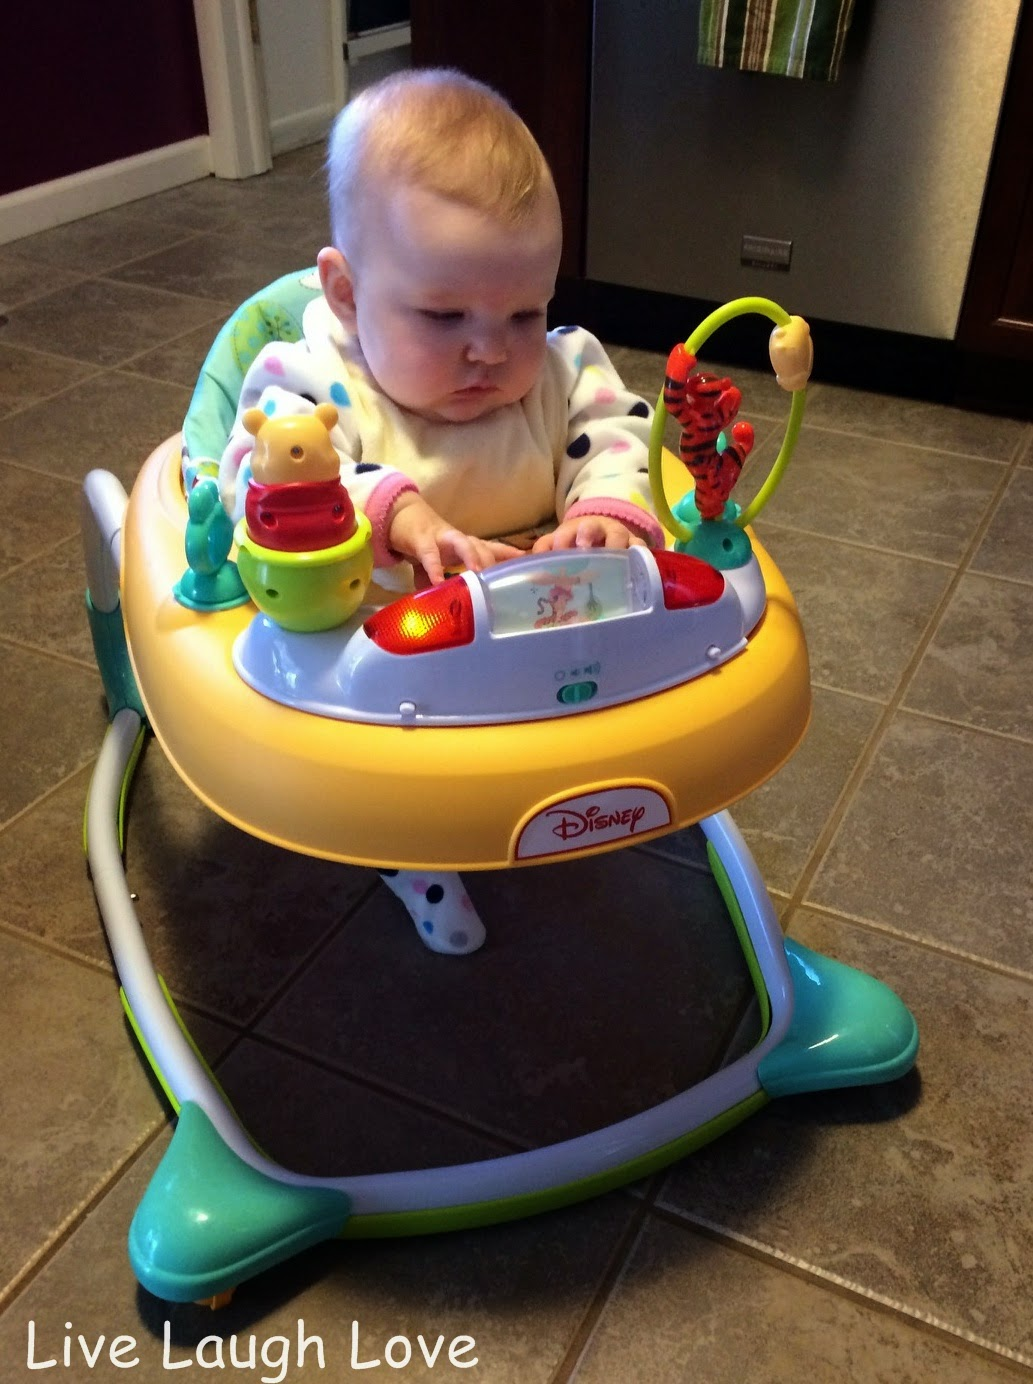 Disney Walker Pooh - Kyla in her new winnie the pooh dots hunny pots walker she is a little to young to make it walk but as she gets older i think she will be